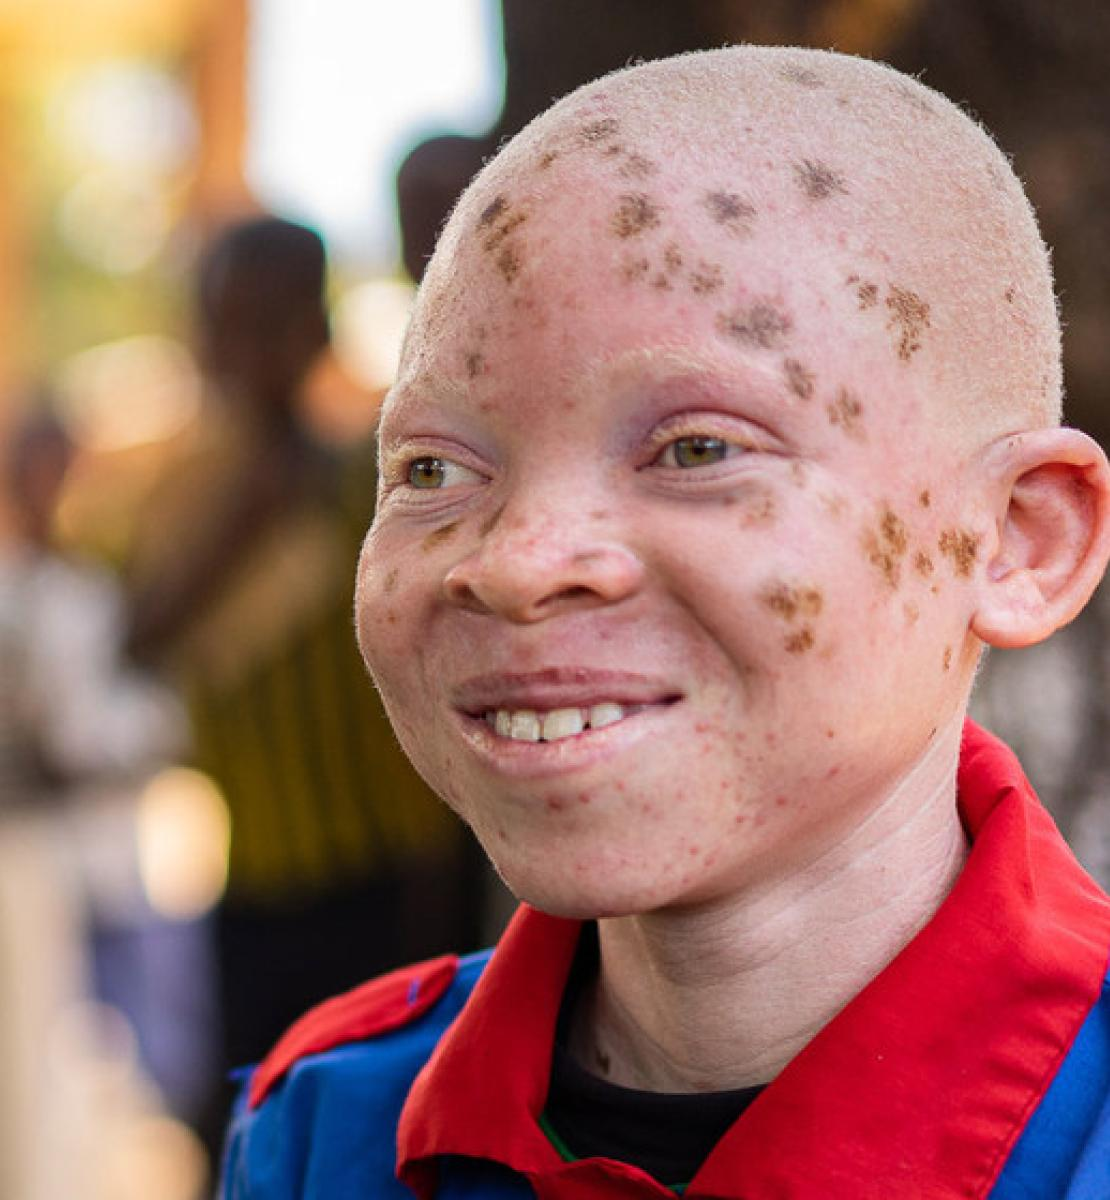 A smiling child with Albinism, Chinsisi Jafali (Right), sits with his classmate (left).